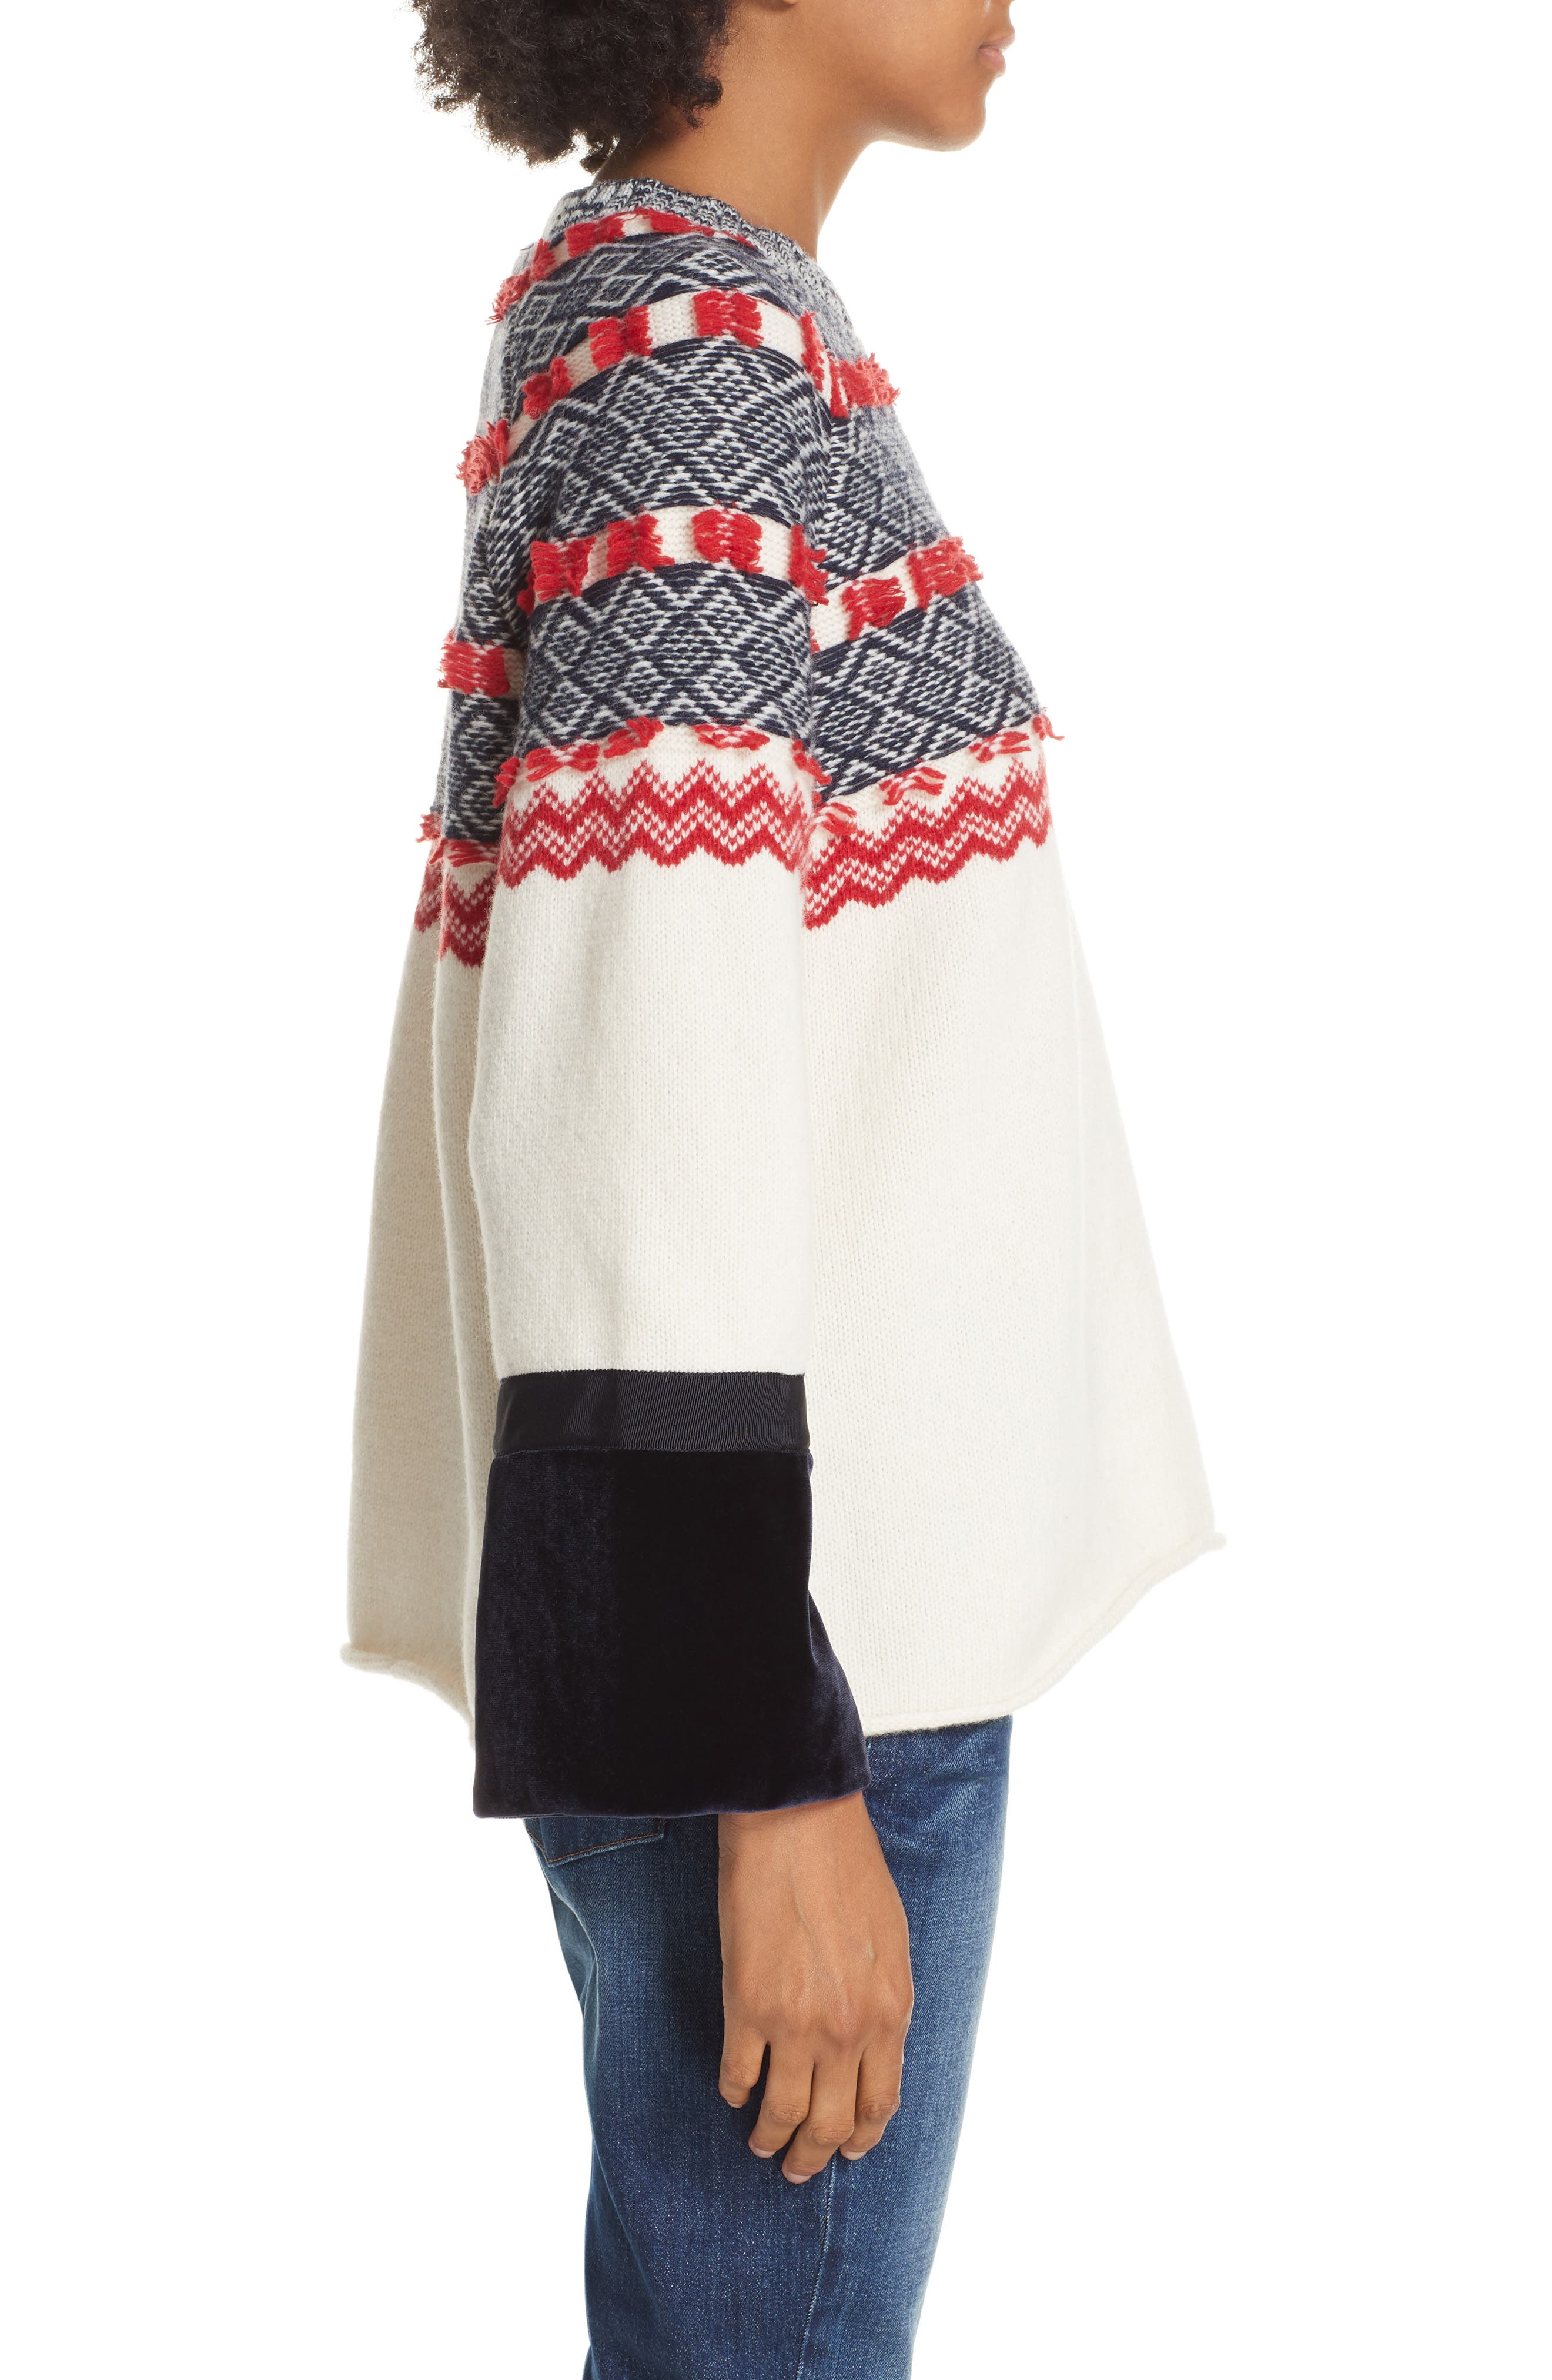 Fair Isle Mix Media Wool Blend Sweater,                             Alternate thumbnail 3, color,                             NAVY/ RED